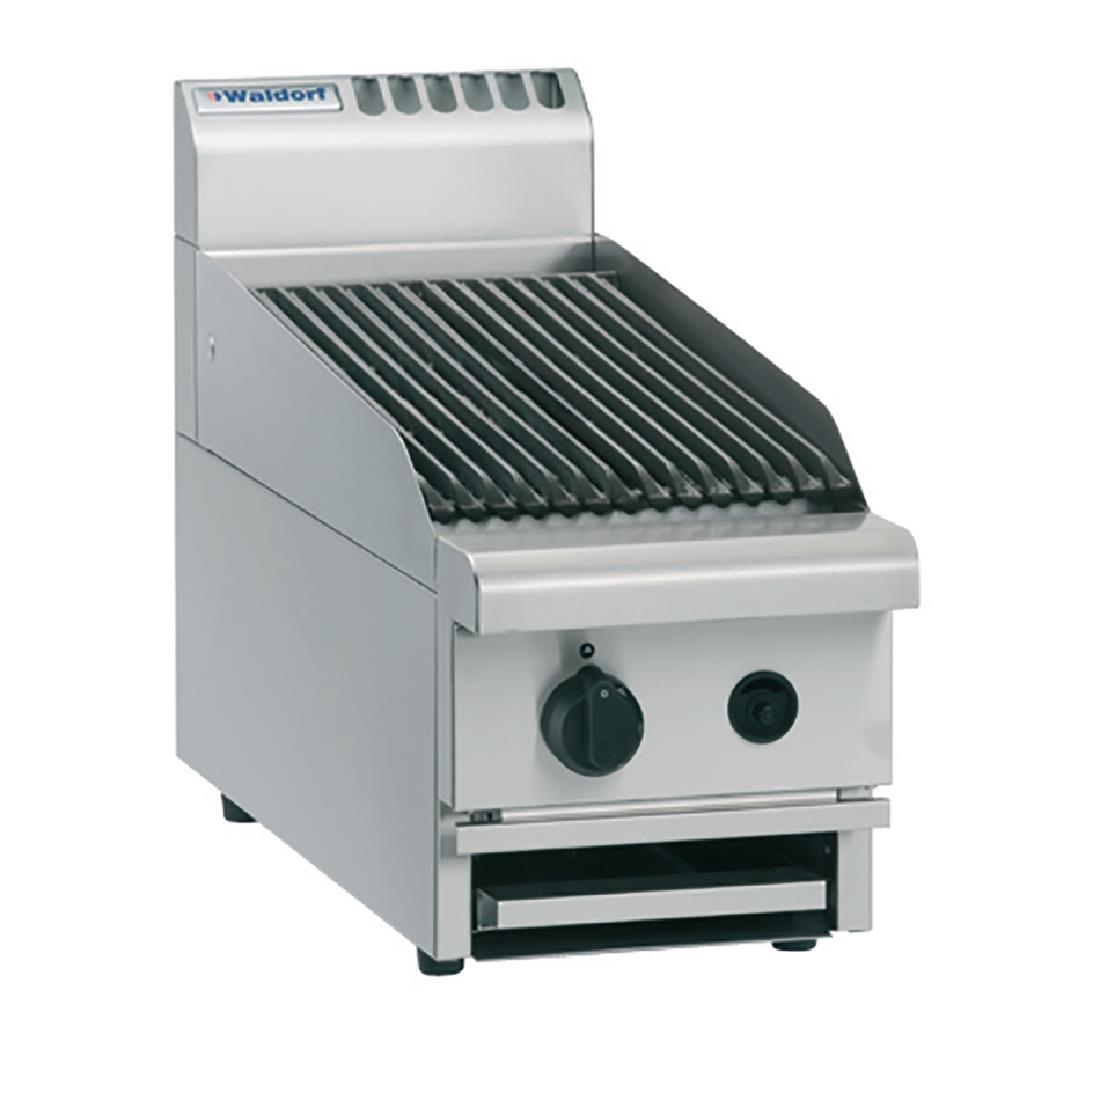 Waldorf by Moffat 300mm Chargrill Bench Model LPG CH8300G-B